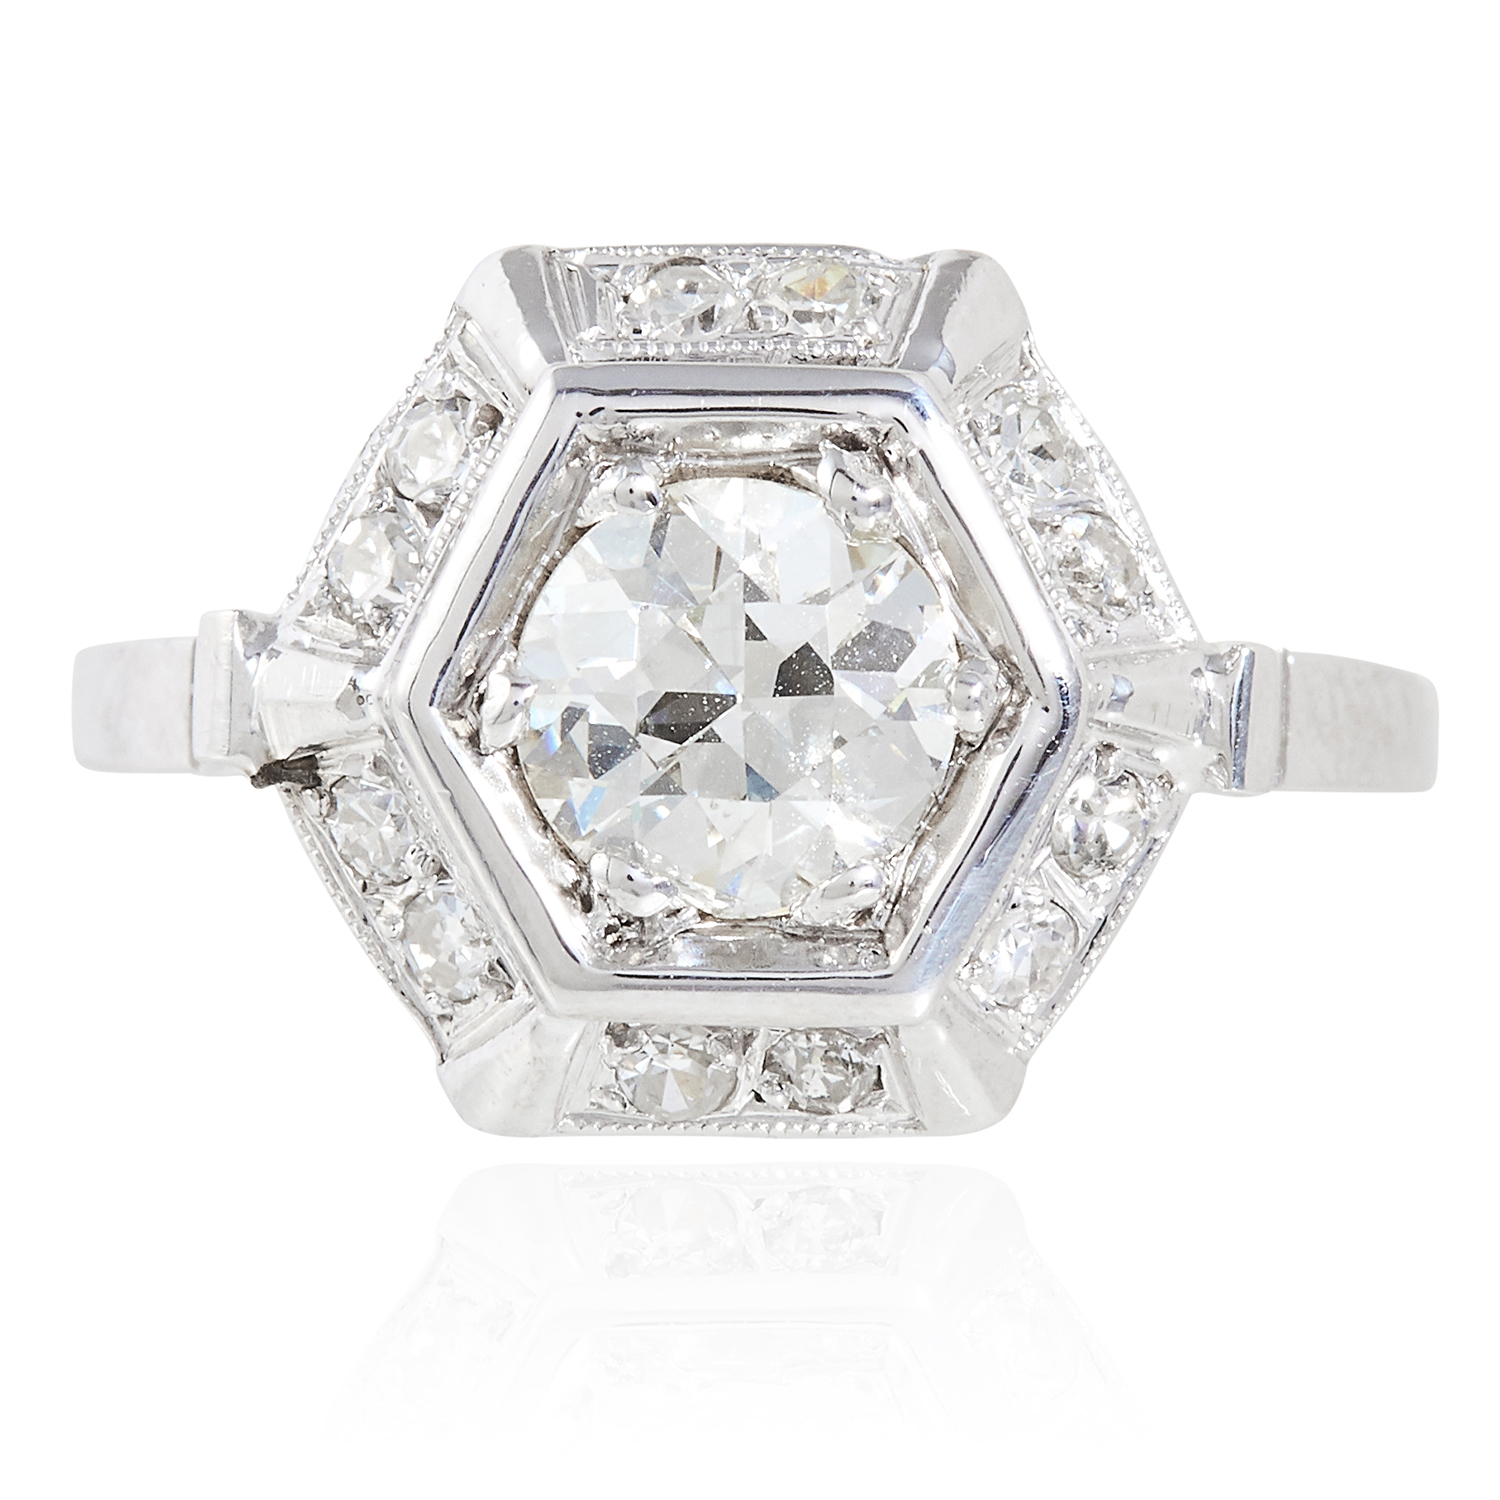 Los 27 - A 0.82 CARAT DIAMOND DRESS RING in white gold or platinum, set with a central round cut diamond of